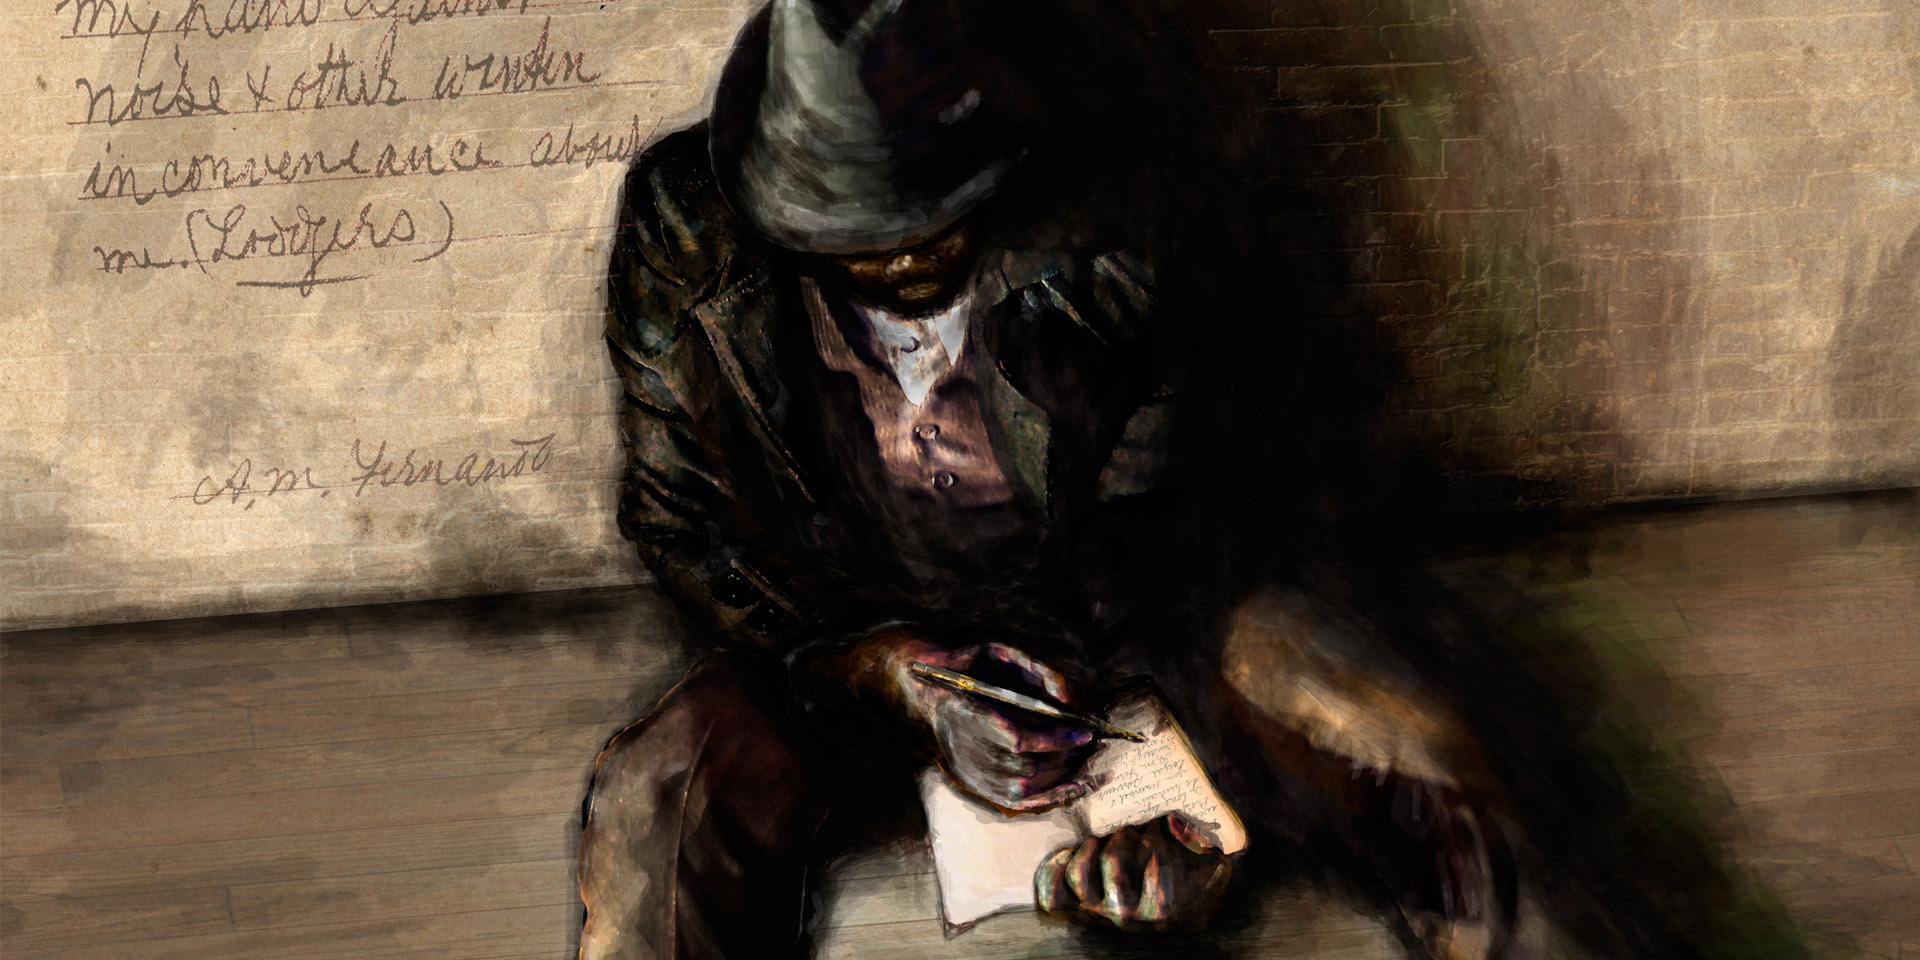 This is a digital art image titled The Lone Protestor, by Daryl Ciubal. It depicts A M Fernando writing in his notebook